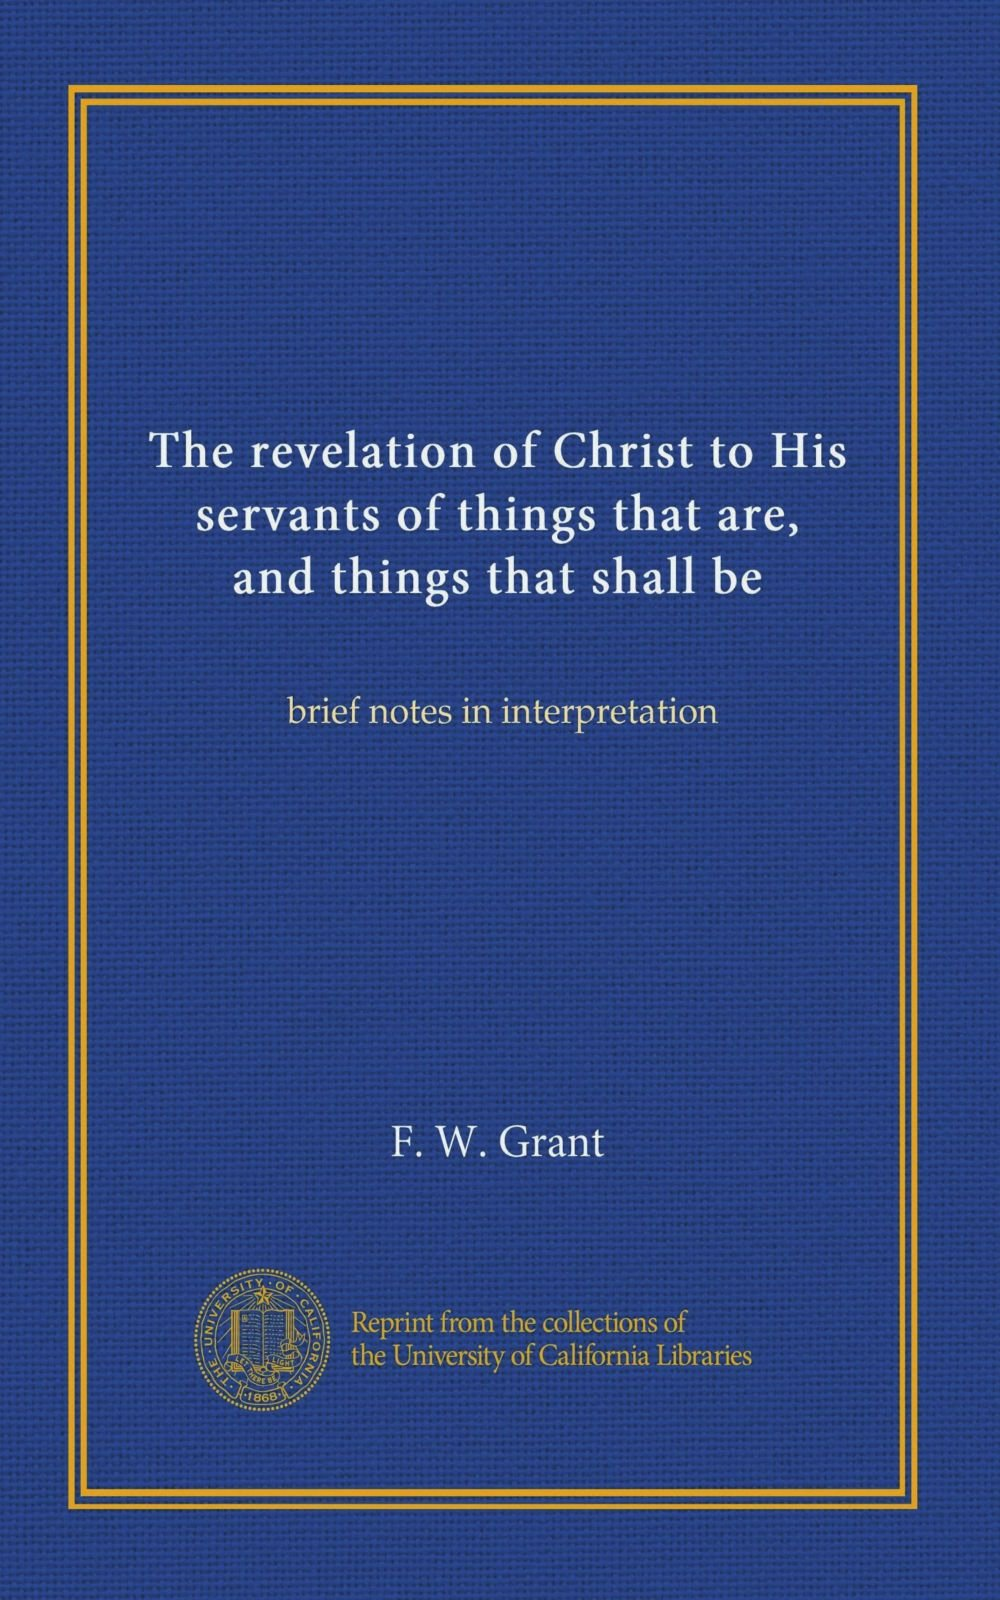 Download The revelation of Christ to His servants of things that are, and things that shall be: brief notes in interpretation ebook